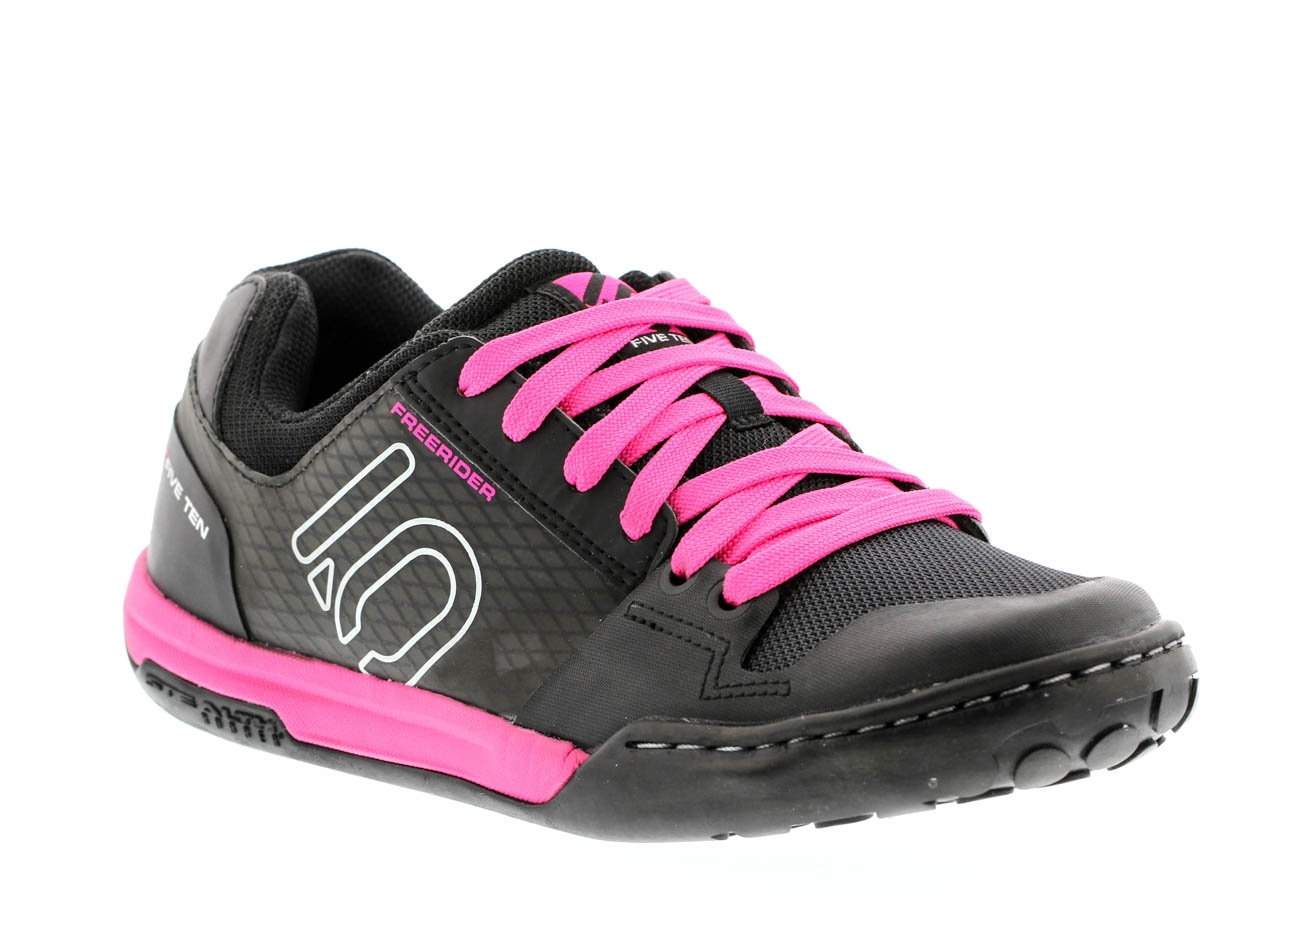 Chaussures femme Five Ten FREERIDER CONTACT Noir/Rose - UK-3.5 (36.0)